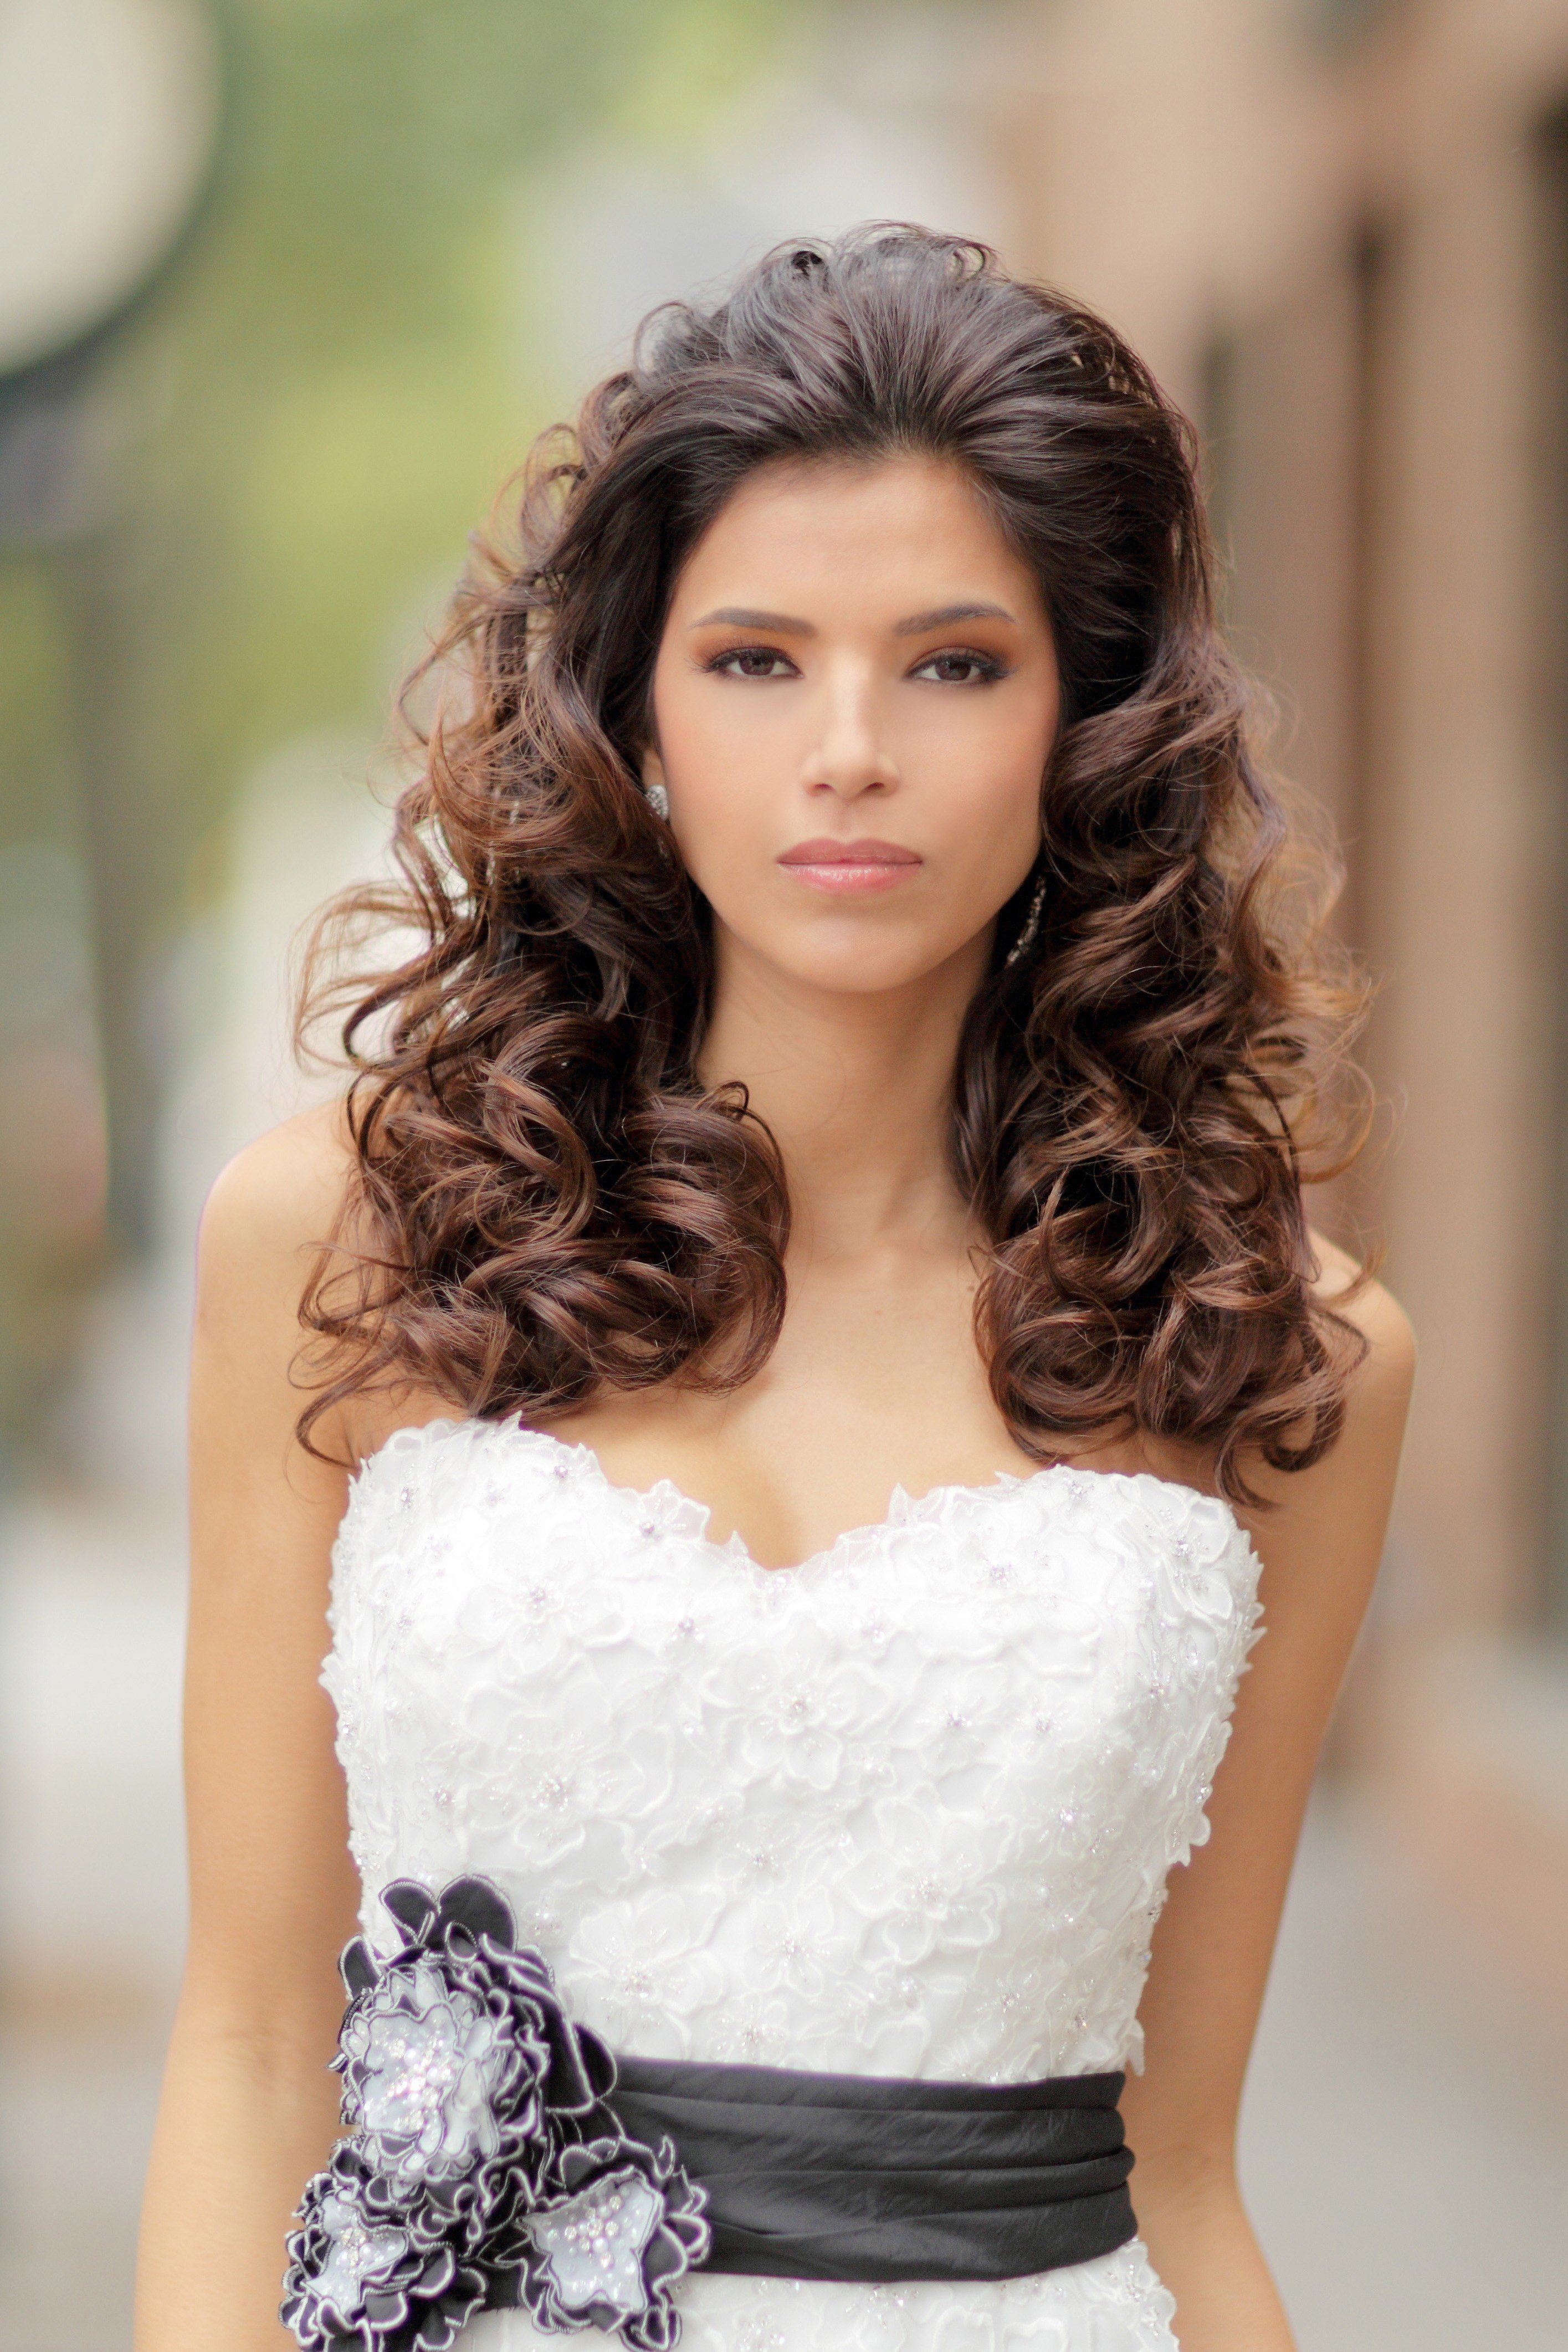 The Best Wedding Hairstyles Pictures